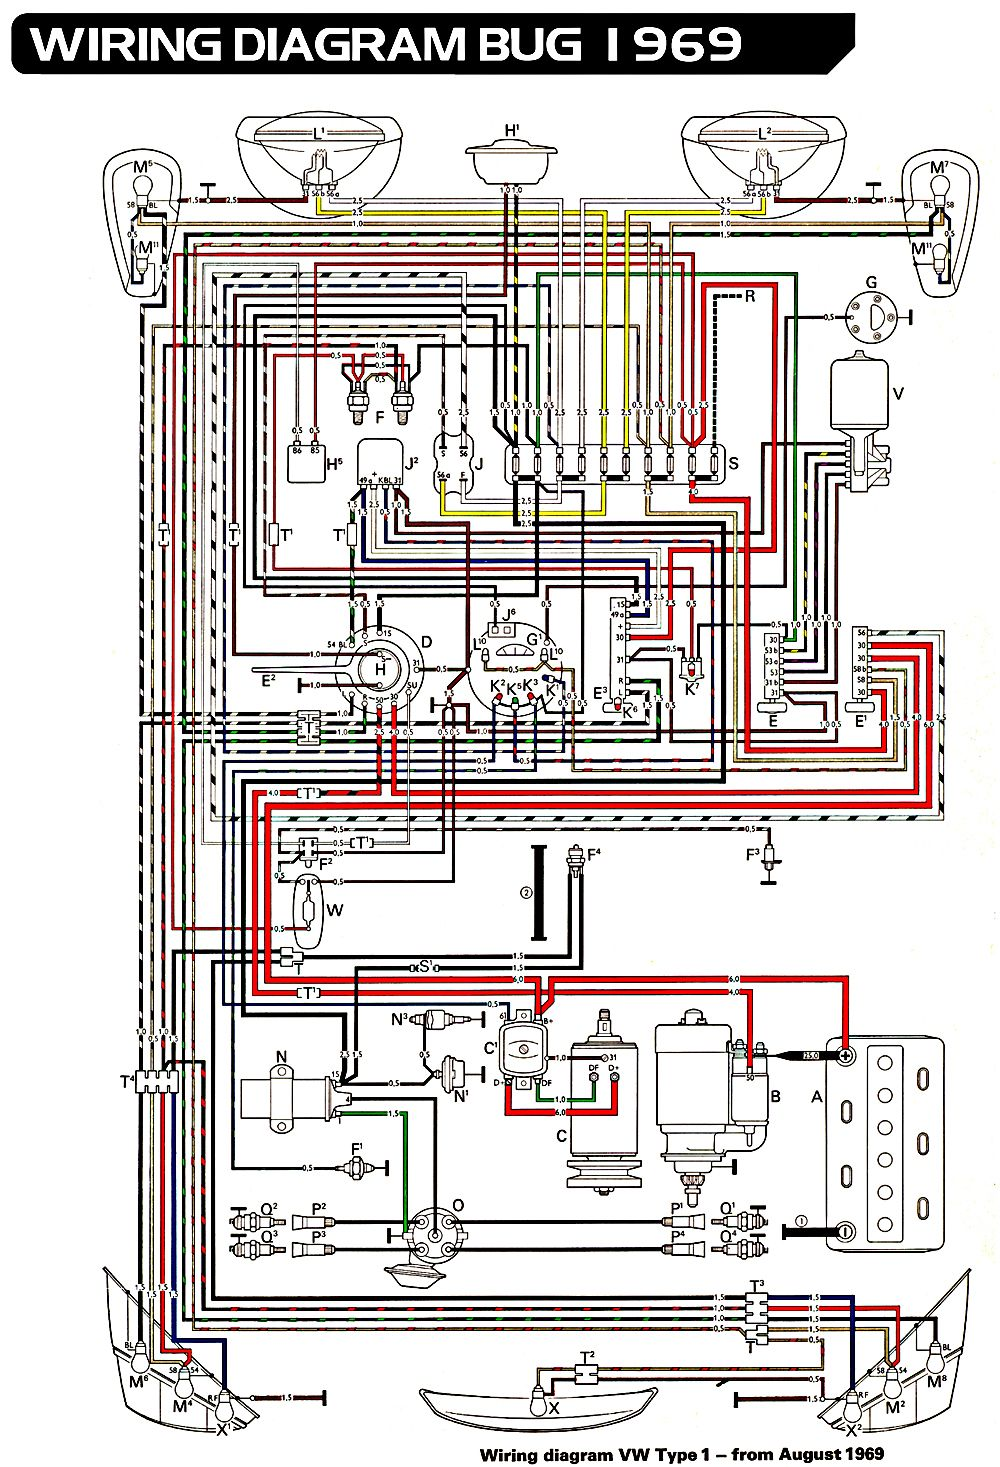 6d75c15875479254f26a32a8499d9044 volkswagen beetle wiring diagram 1966 vw beetle wiring vw bug wiring diagram at soozxer.org